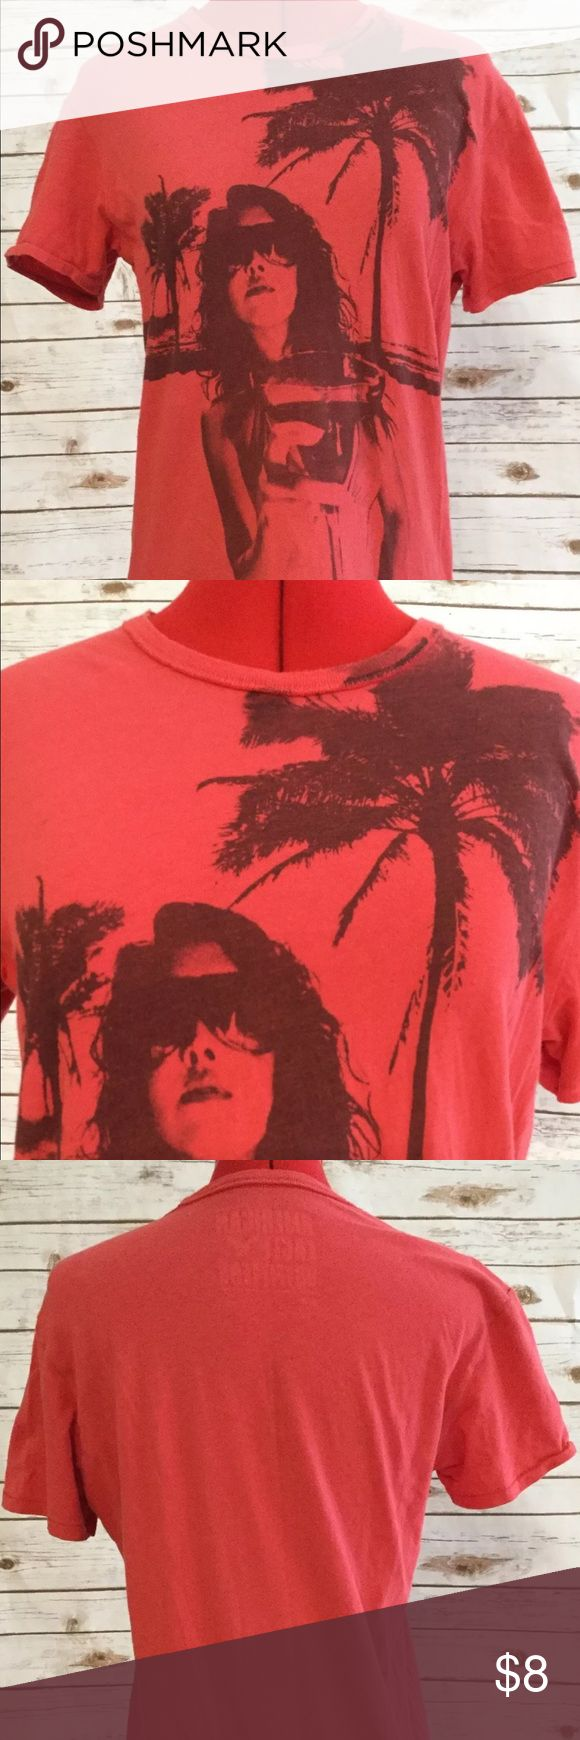 American Eagle Outfitters Graphic T-Shirt This t-shirt is a Live Your Life logo in vintage Iit depicting a beach scene. Very casual. American Eagle Outfitters Tops Tees - Short Sleeve